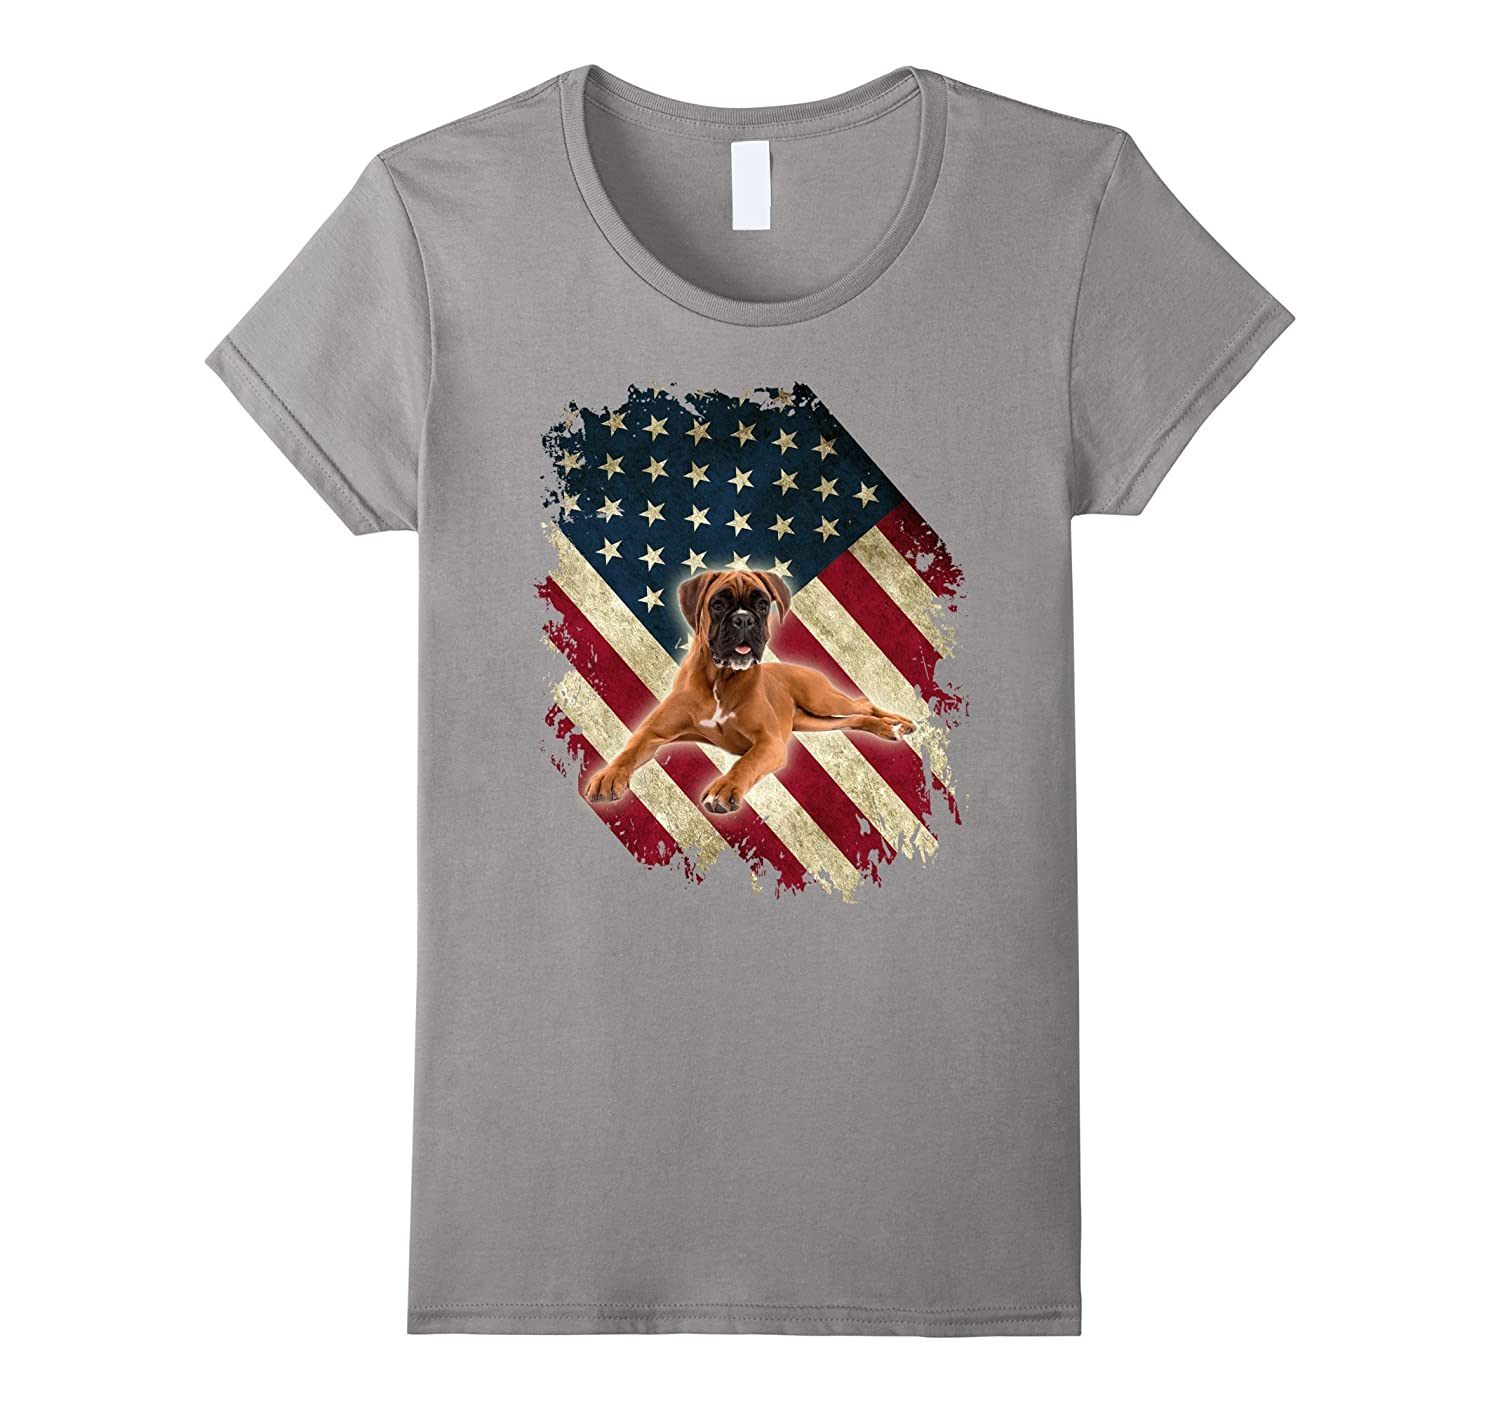 The 4th July Patriotic T-Shirt Boxer Dog Lover